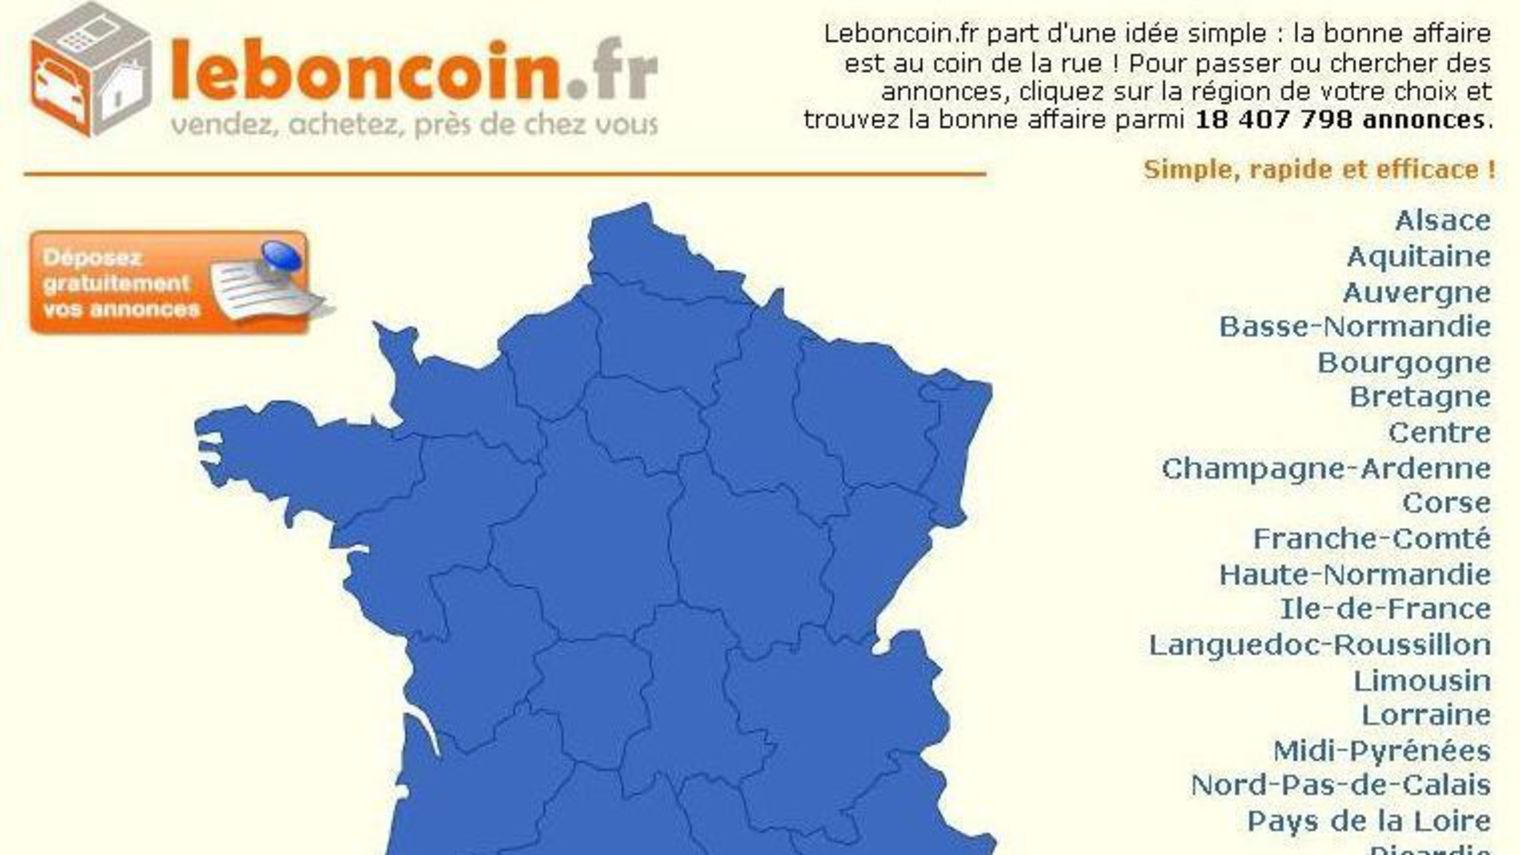 Le bon coin 13 ameublement for Le bon coin 38 ameublement